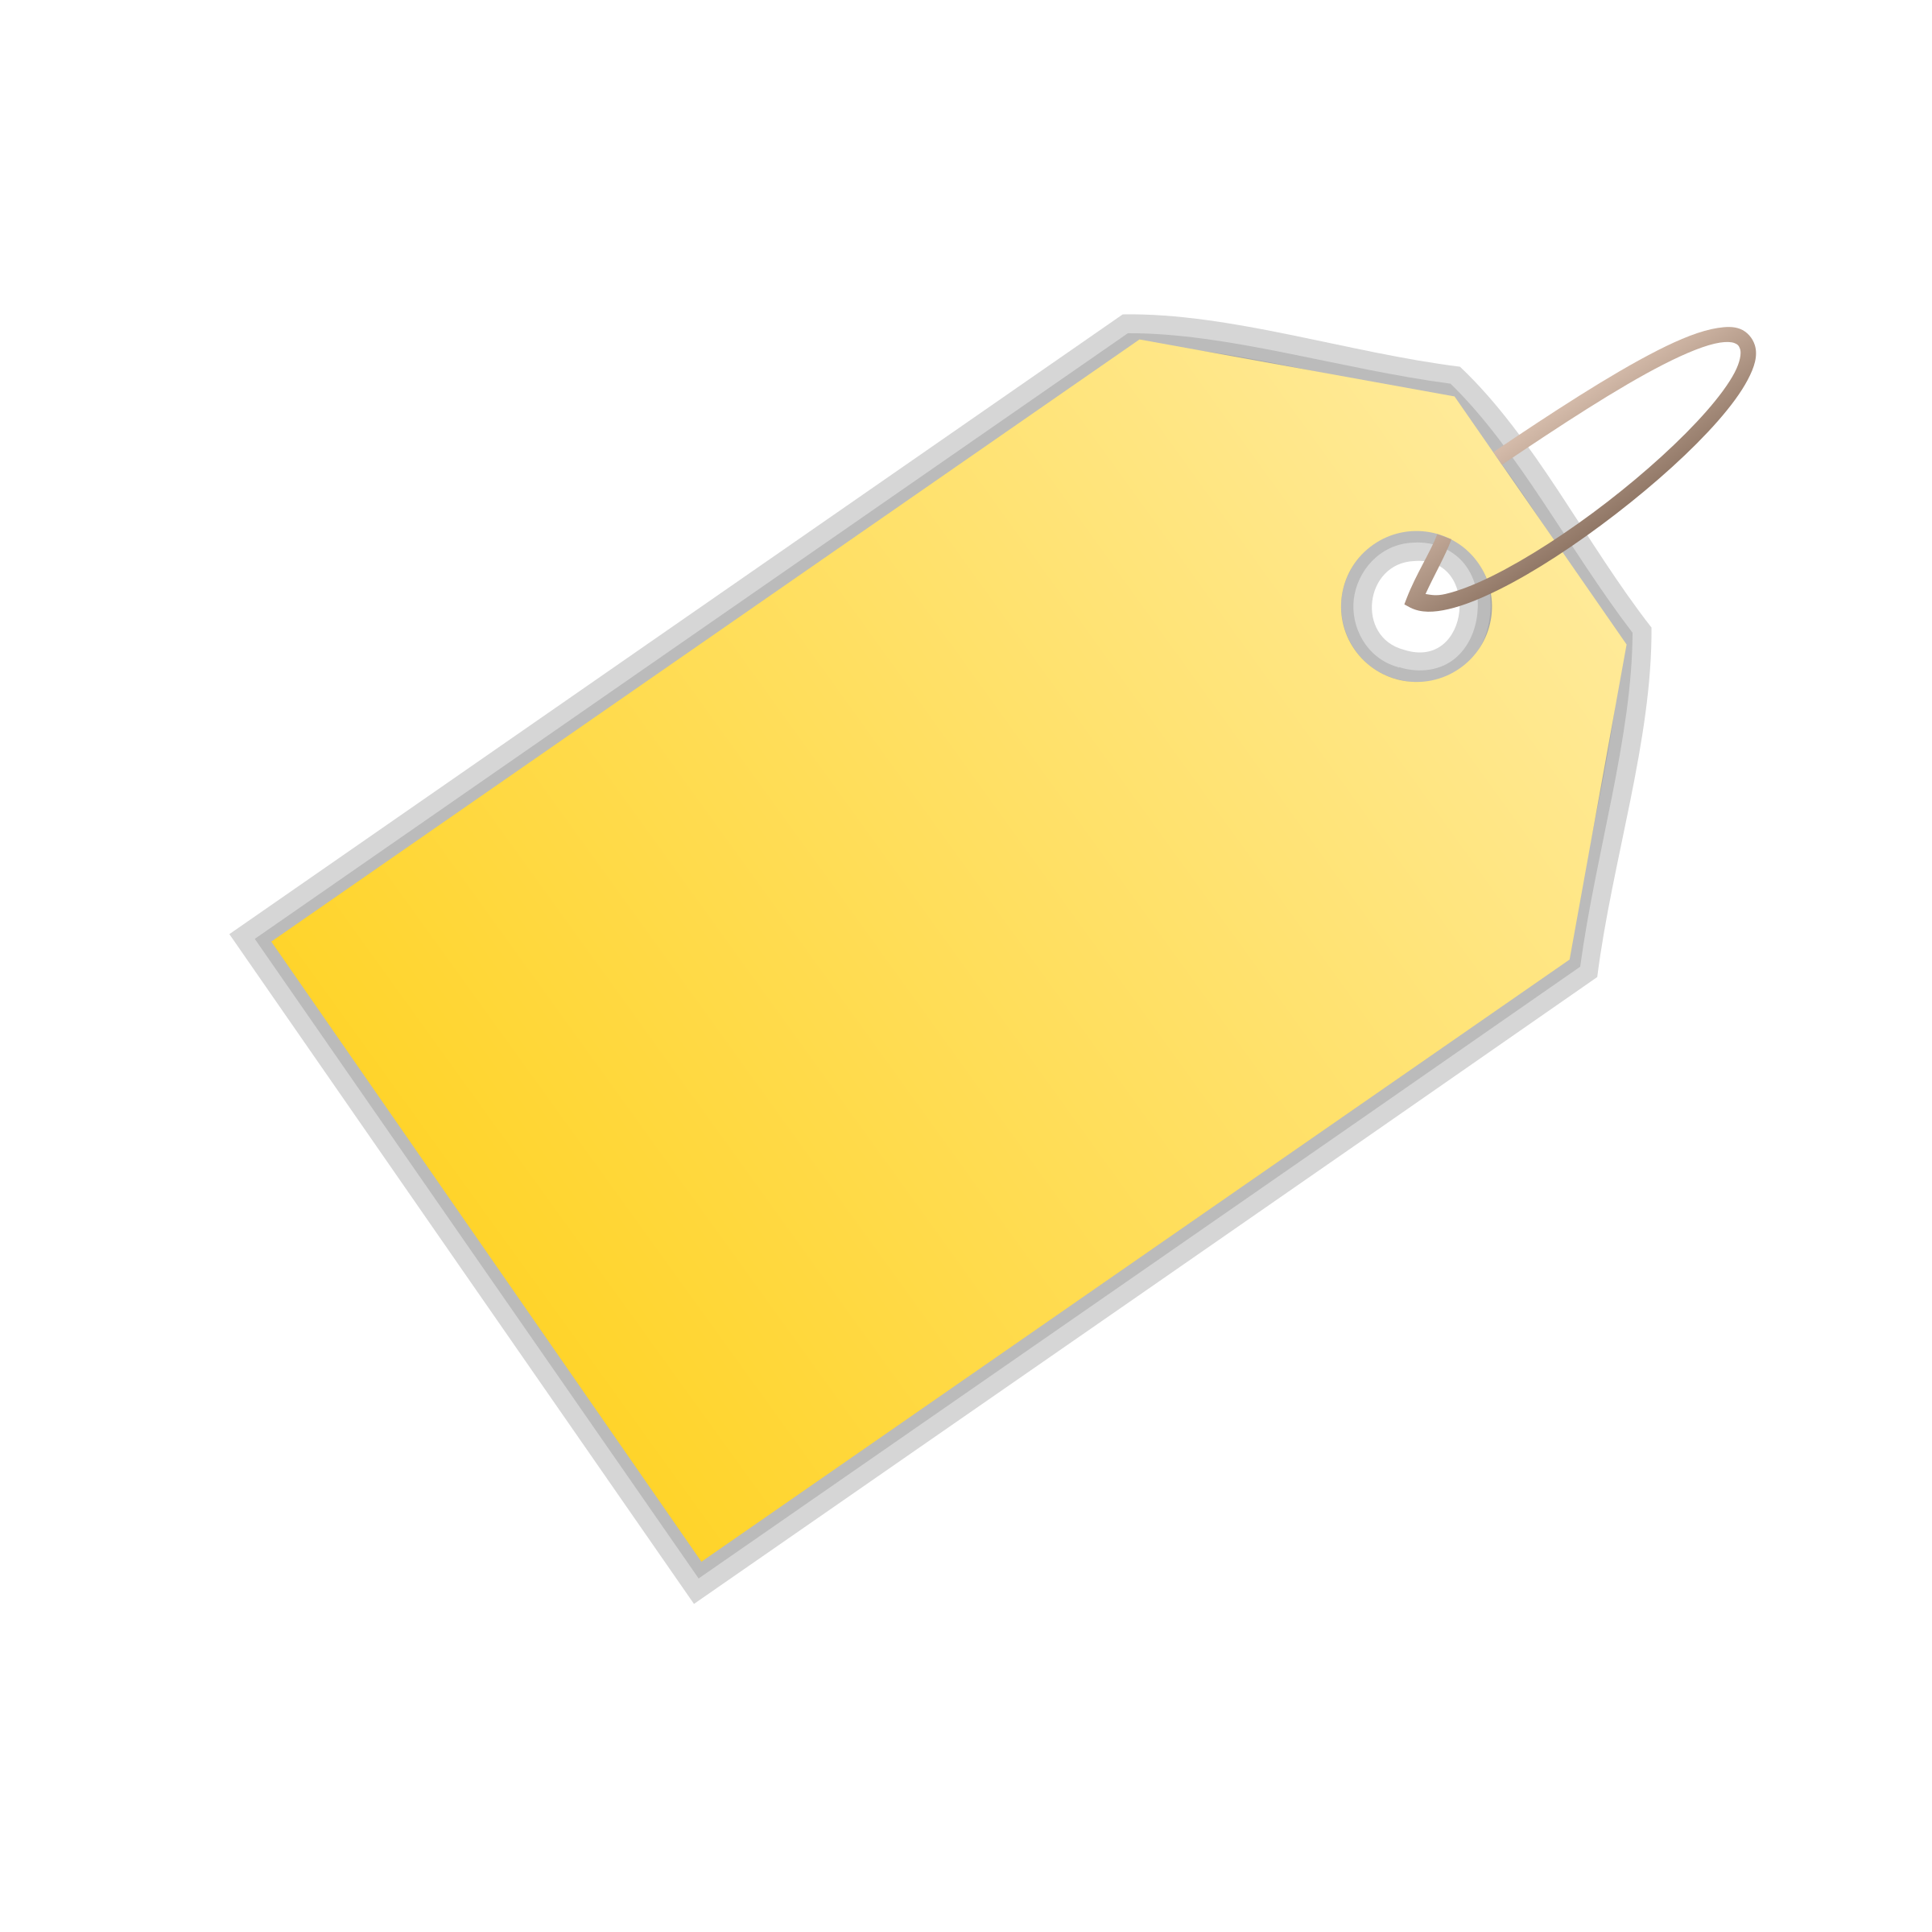 Yellow Blank Price Tag Png